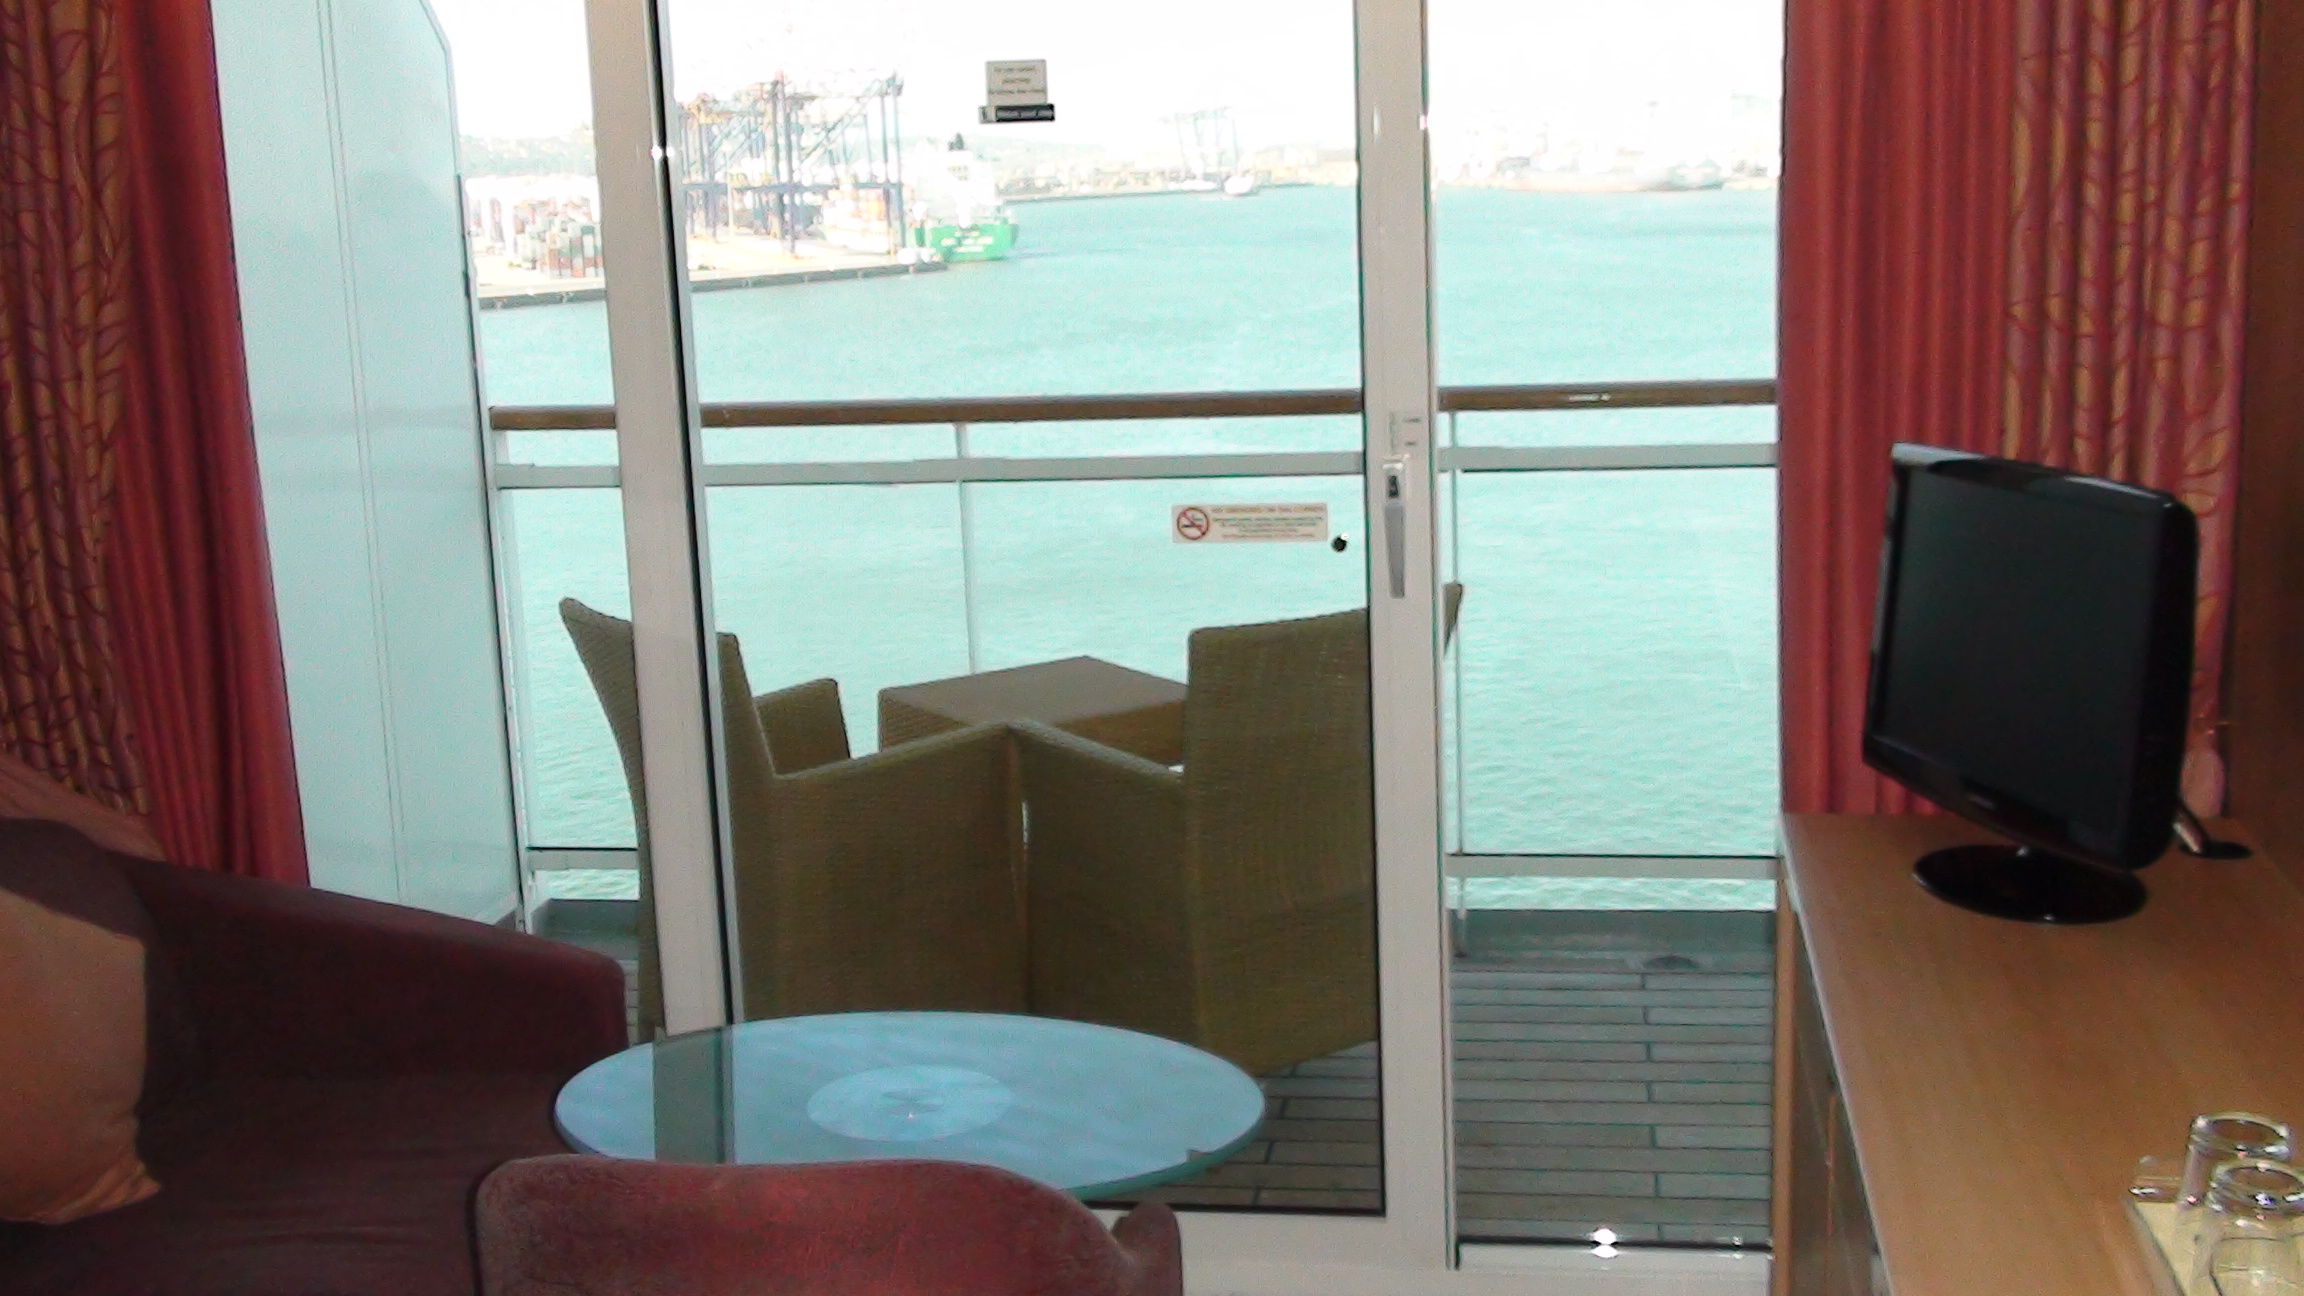 Msc sinfonia cabin categories for Balcony in cruise ship